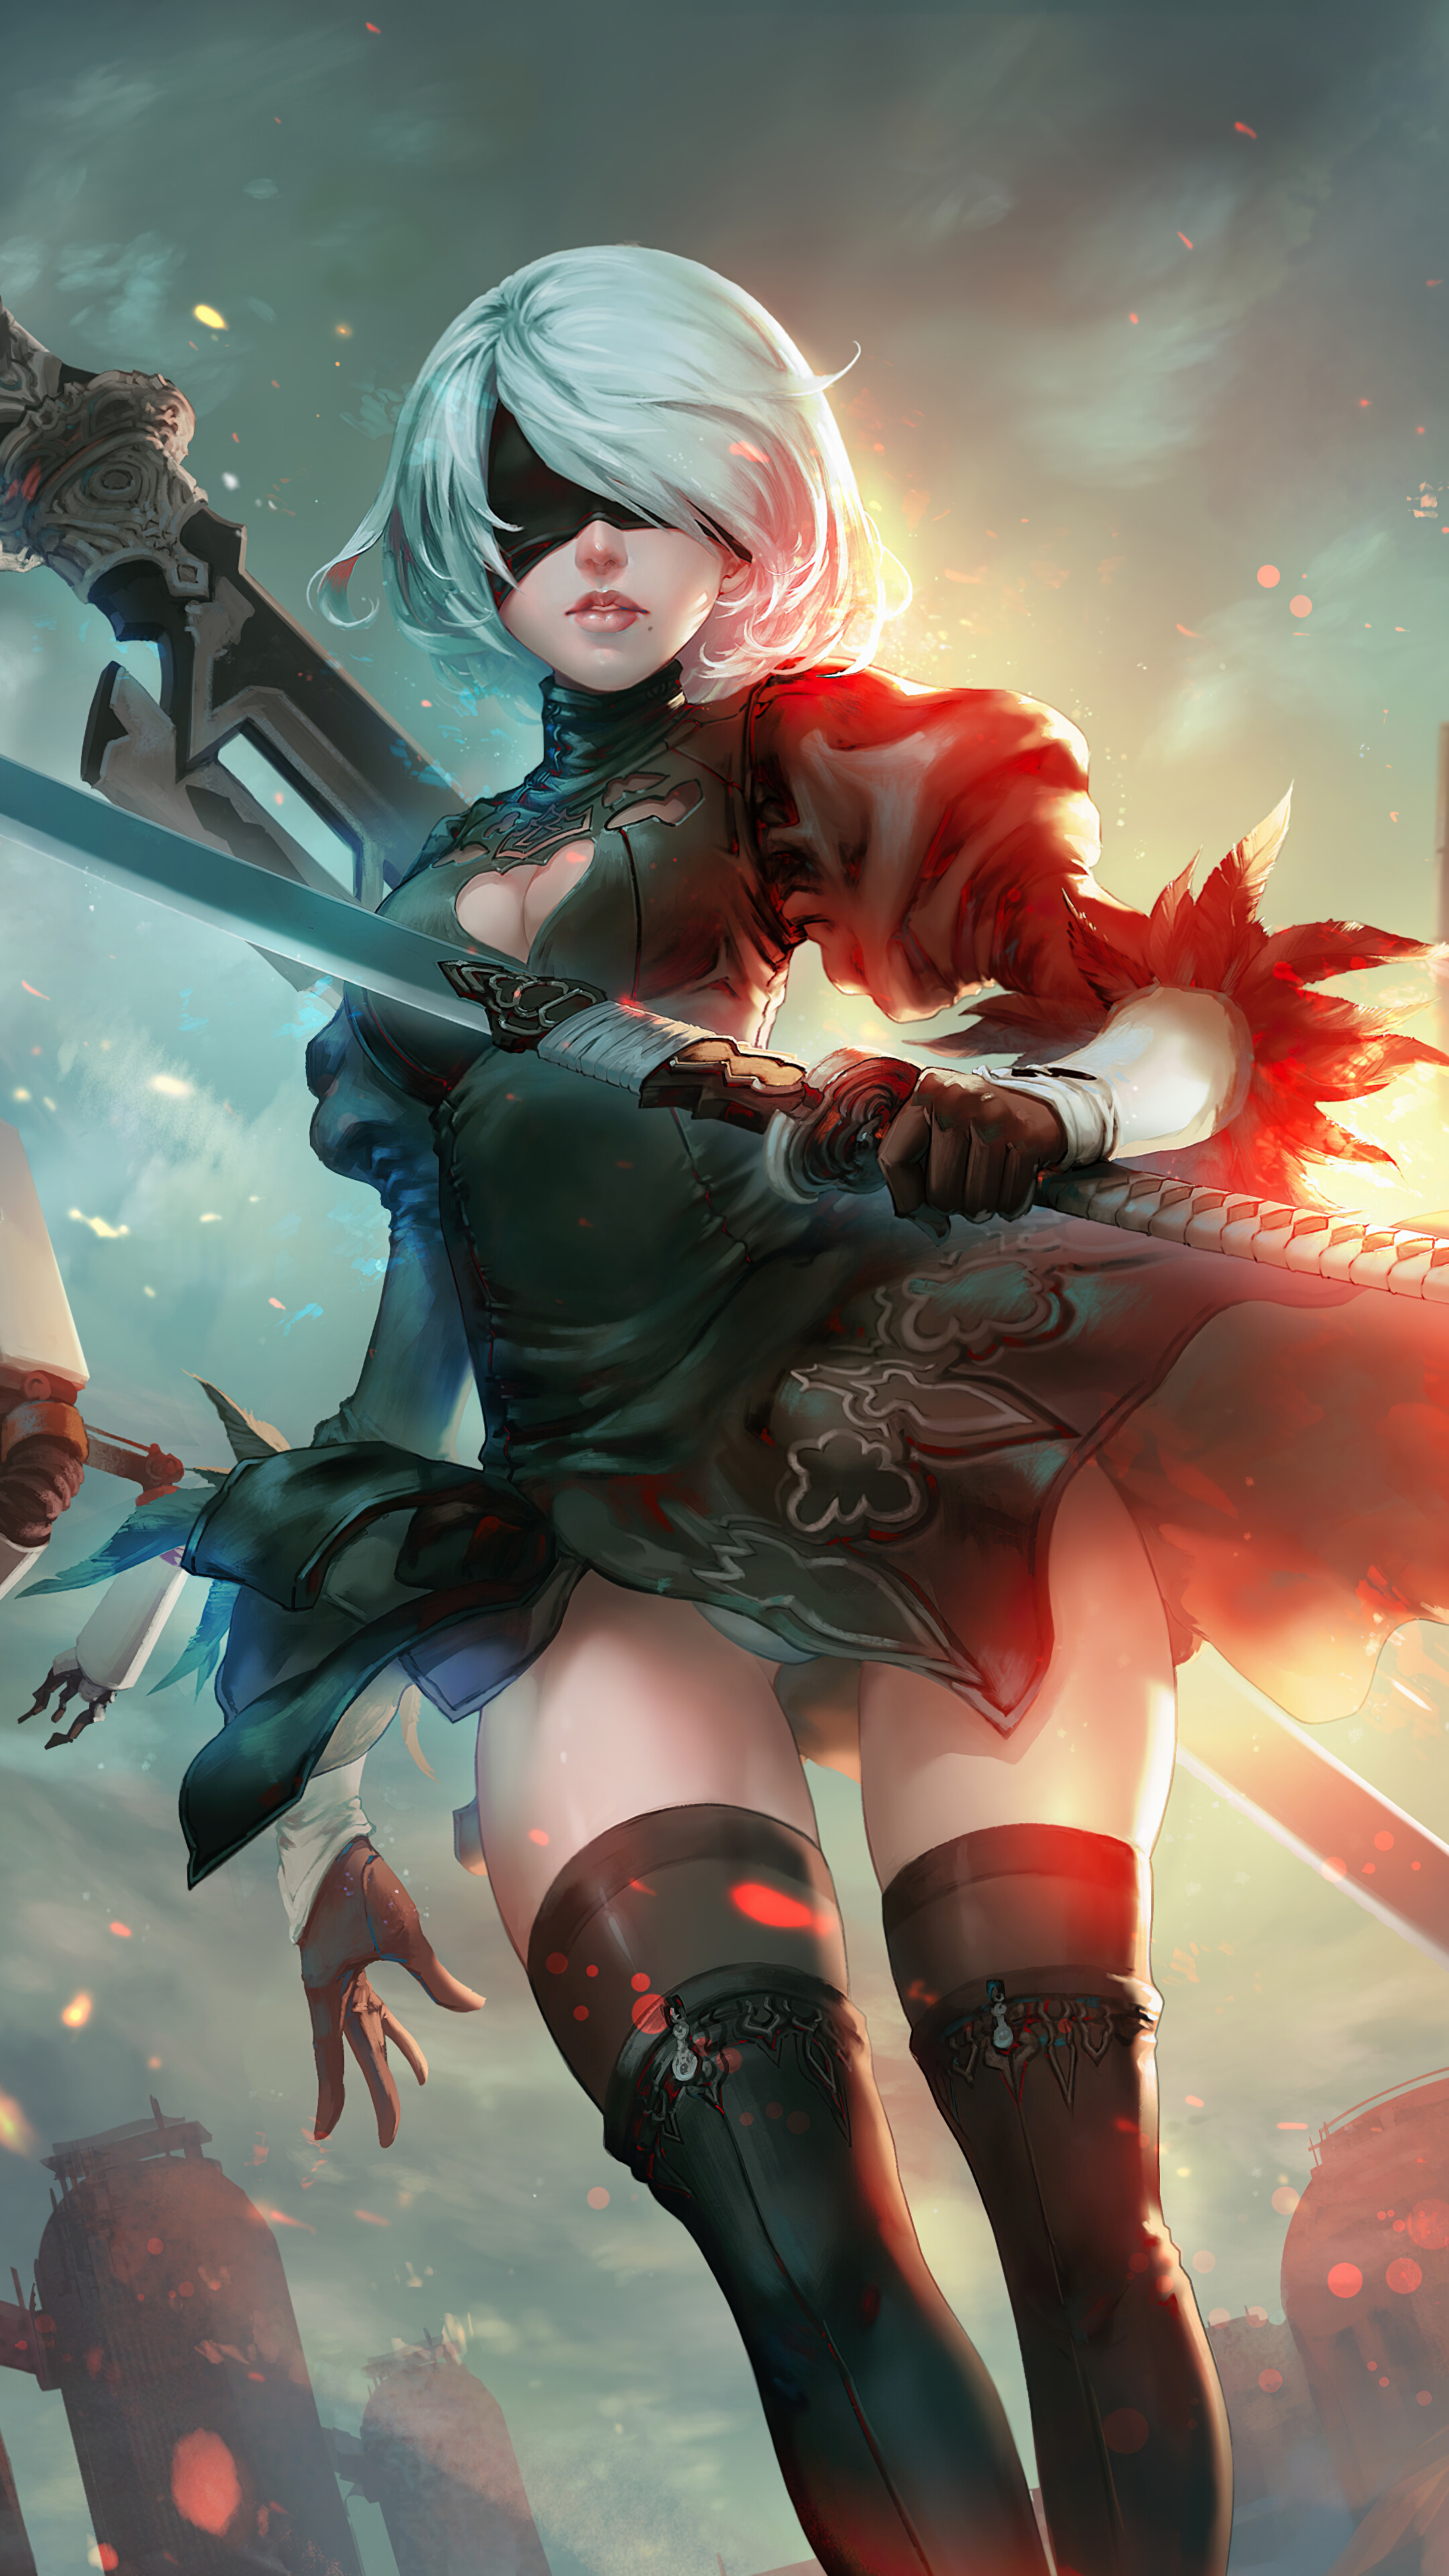 2b Phone Wallpaper : phone, wallpaper, Automata, Katana, Wallpaper, #6.608